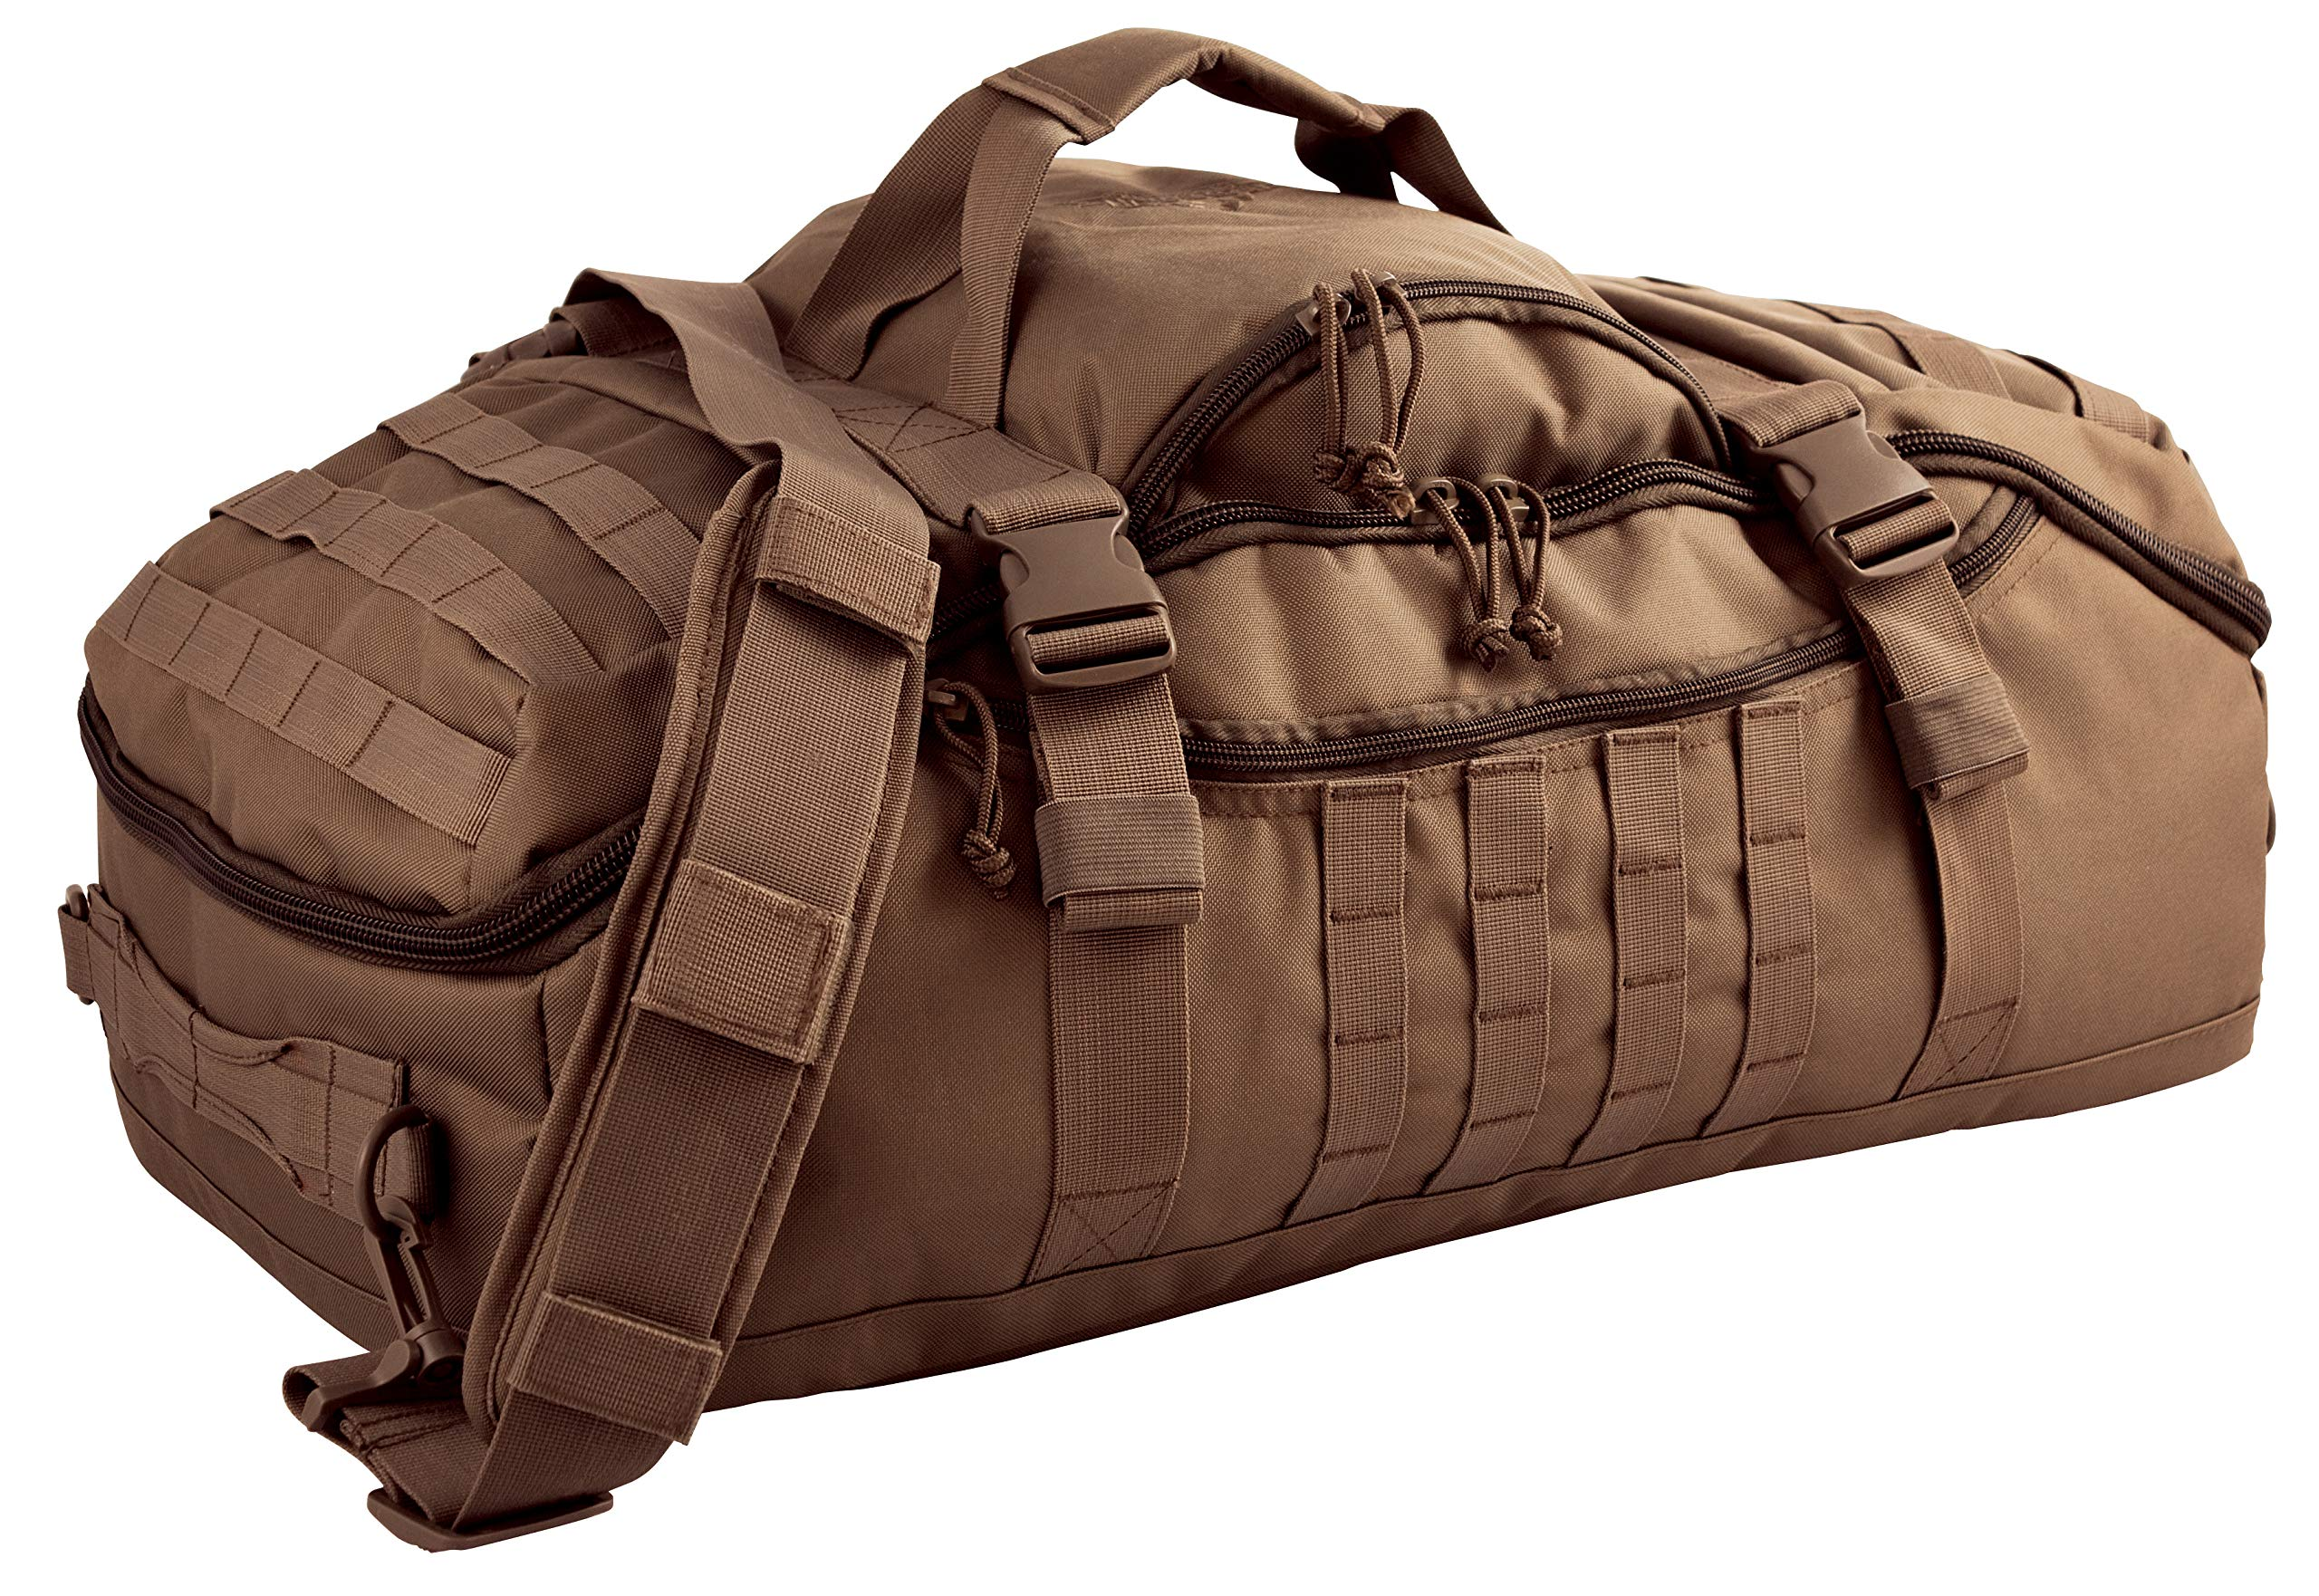 Red Rock Outdoor Gear - Traveler Duffle Pack by Red Rock Outdoor Gear